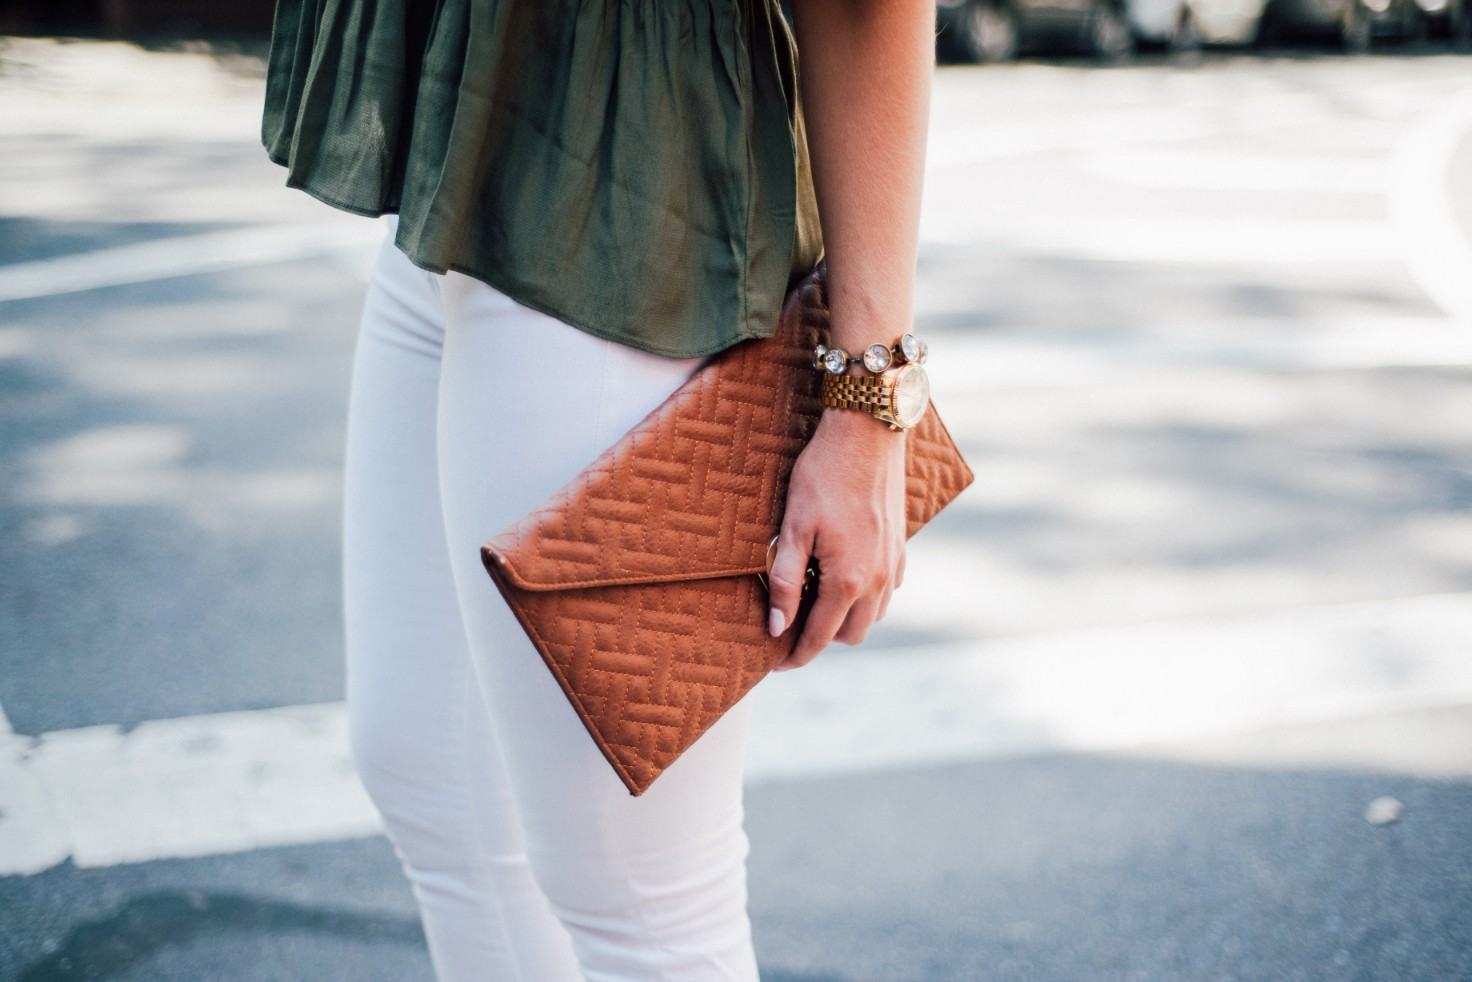 white jeans and peplum top west village fashion new york fashion blogger lauren slade style elixir blog spring outfit ideas 14 - Style Sessions - White Jeans and Peplum Top in the West Village featured by popular US style blogger, Style Elixir